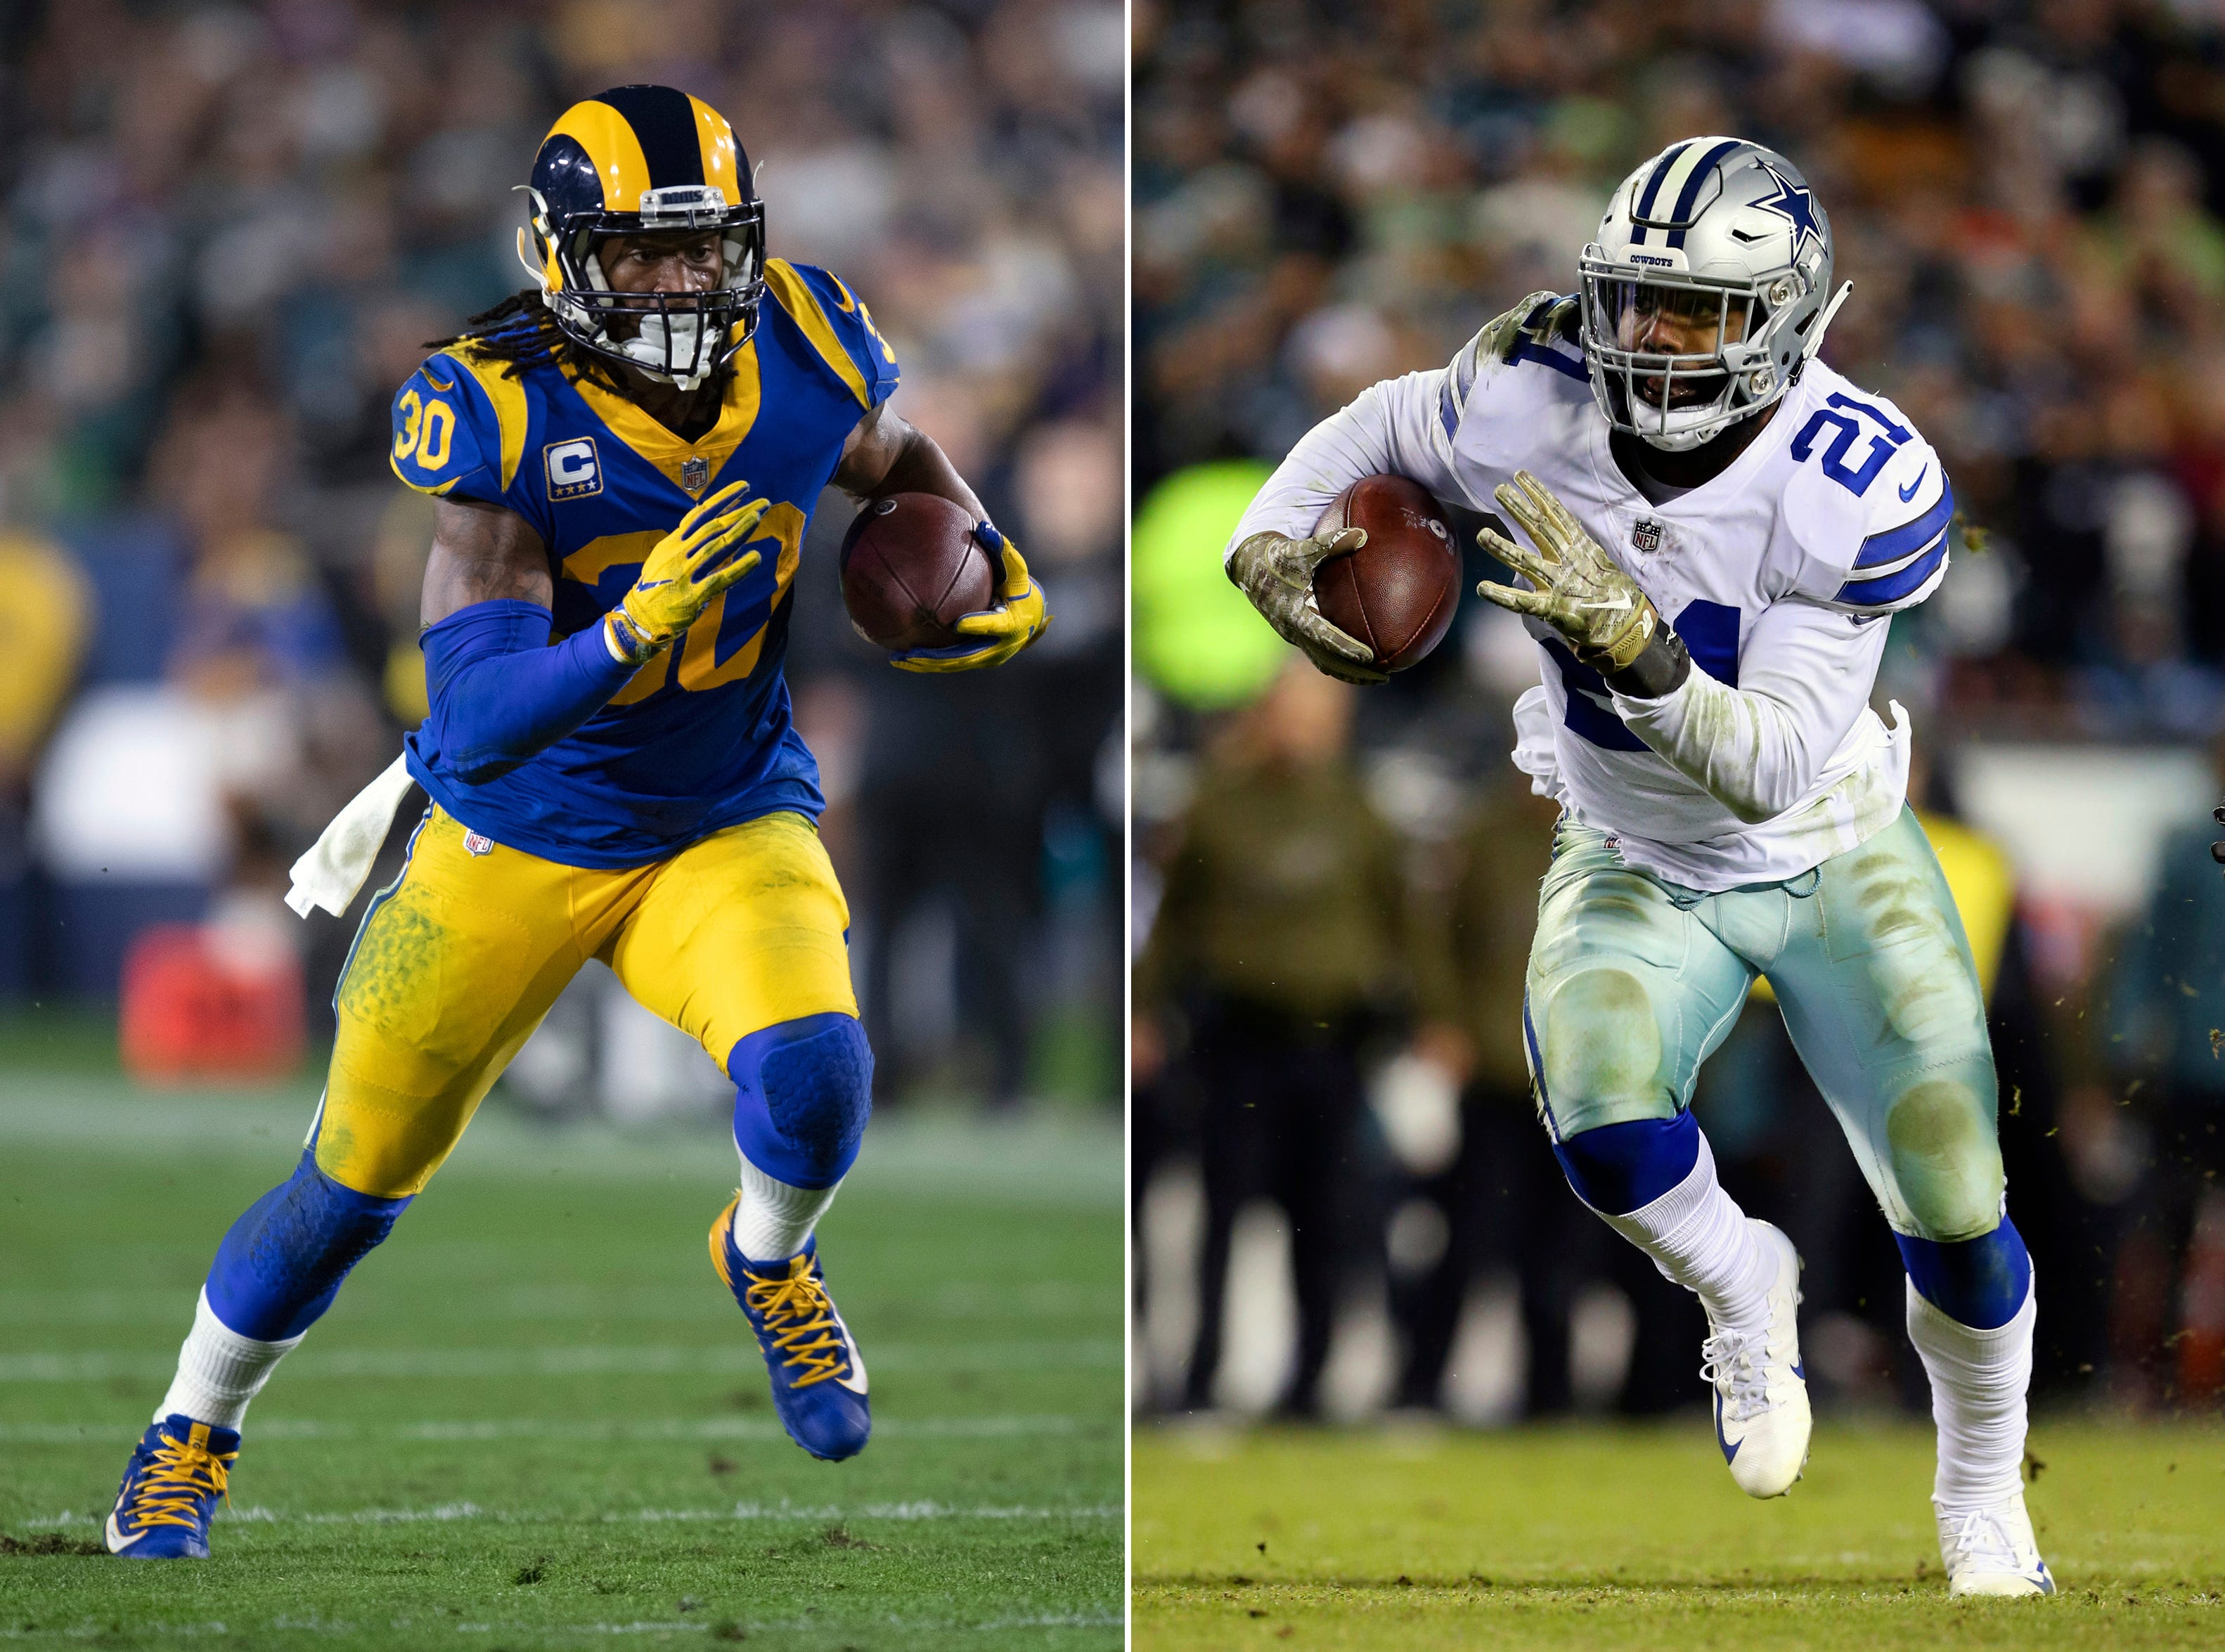 Opinion: Feeding Cowboys' Ezekiel Elliott, with Todd Gurley in the house, is hot NFL subplot